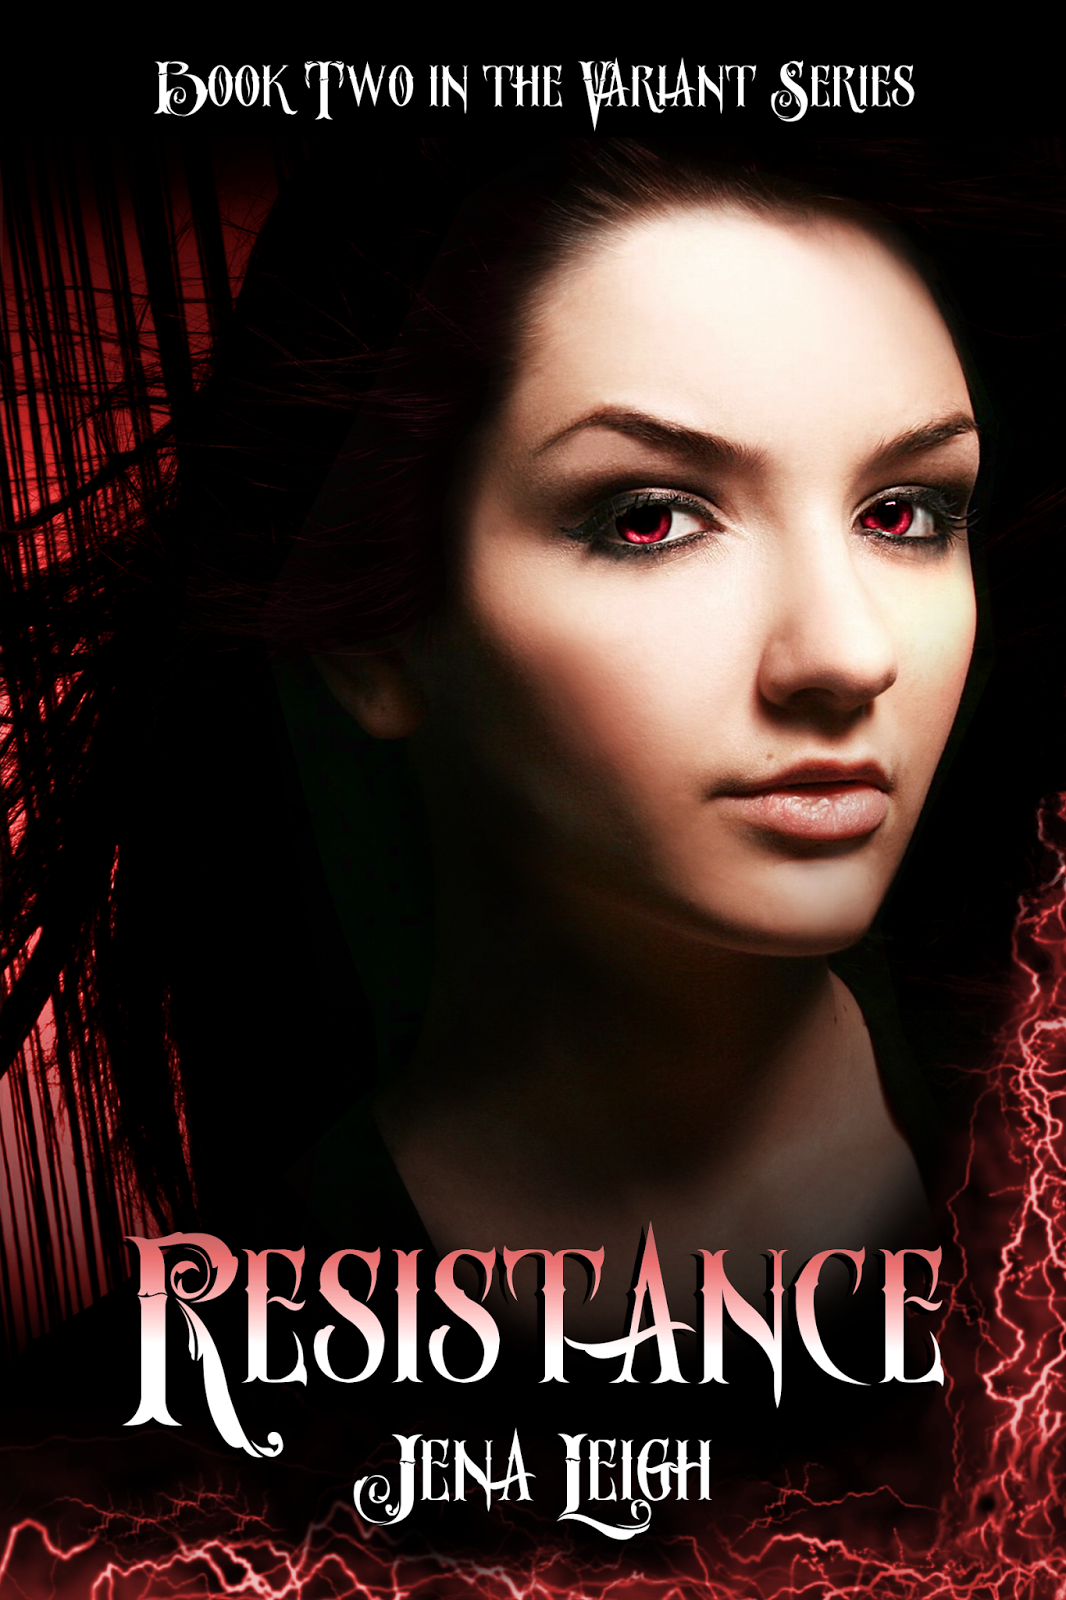 Find Resistance on Amazon